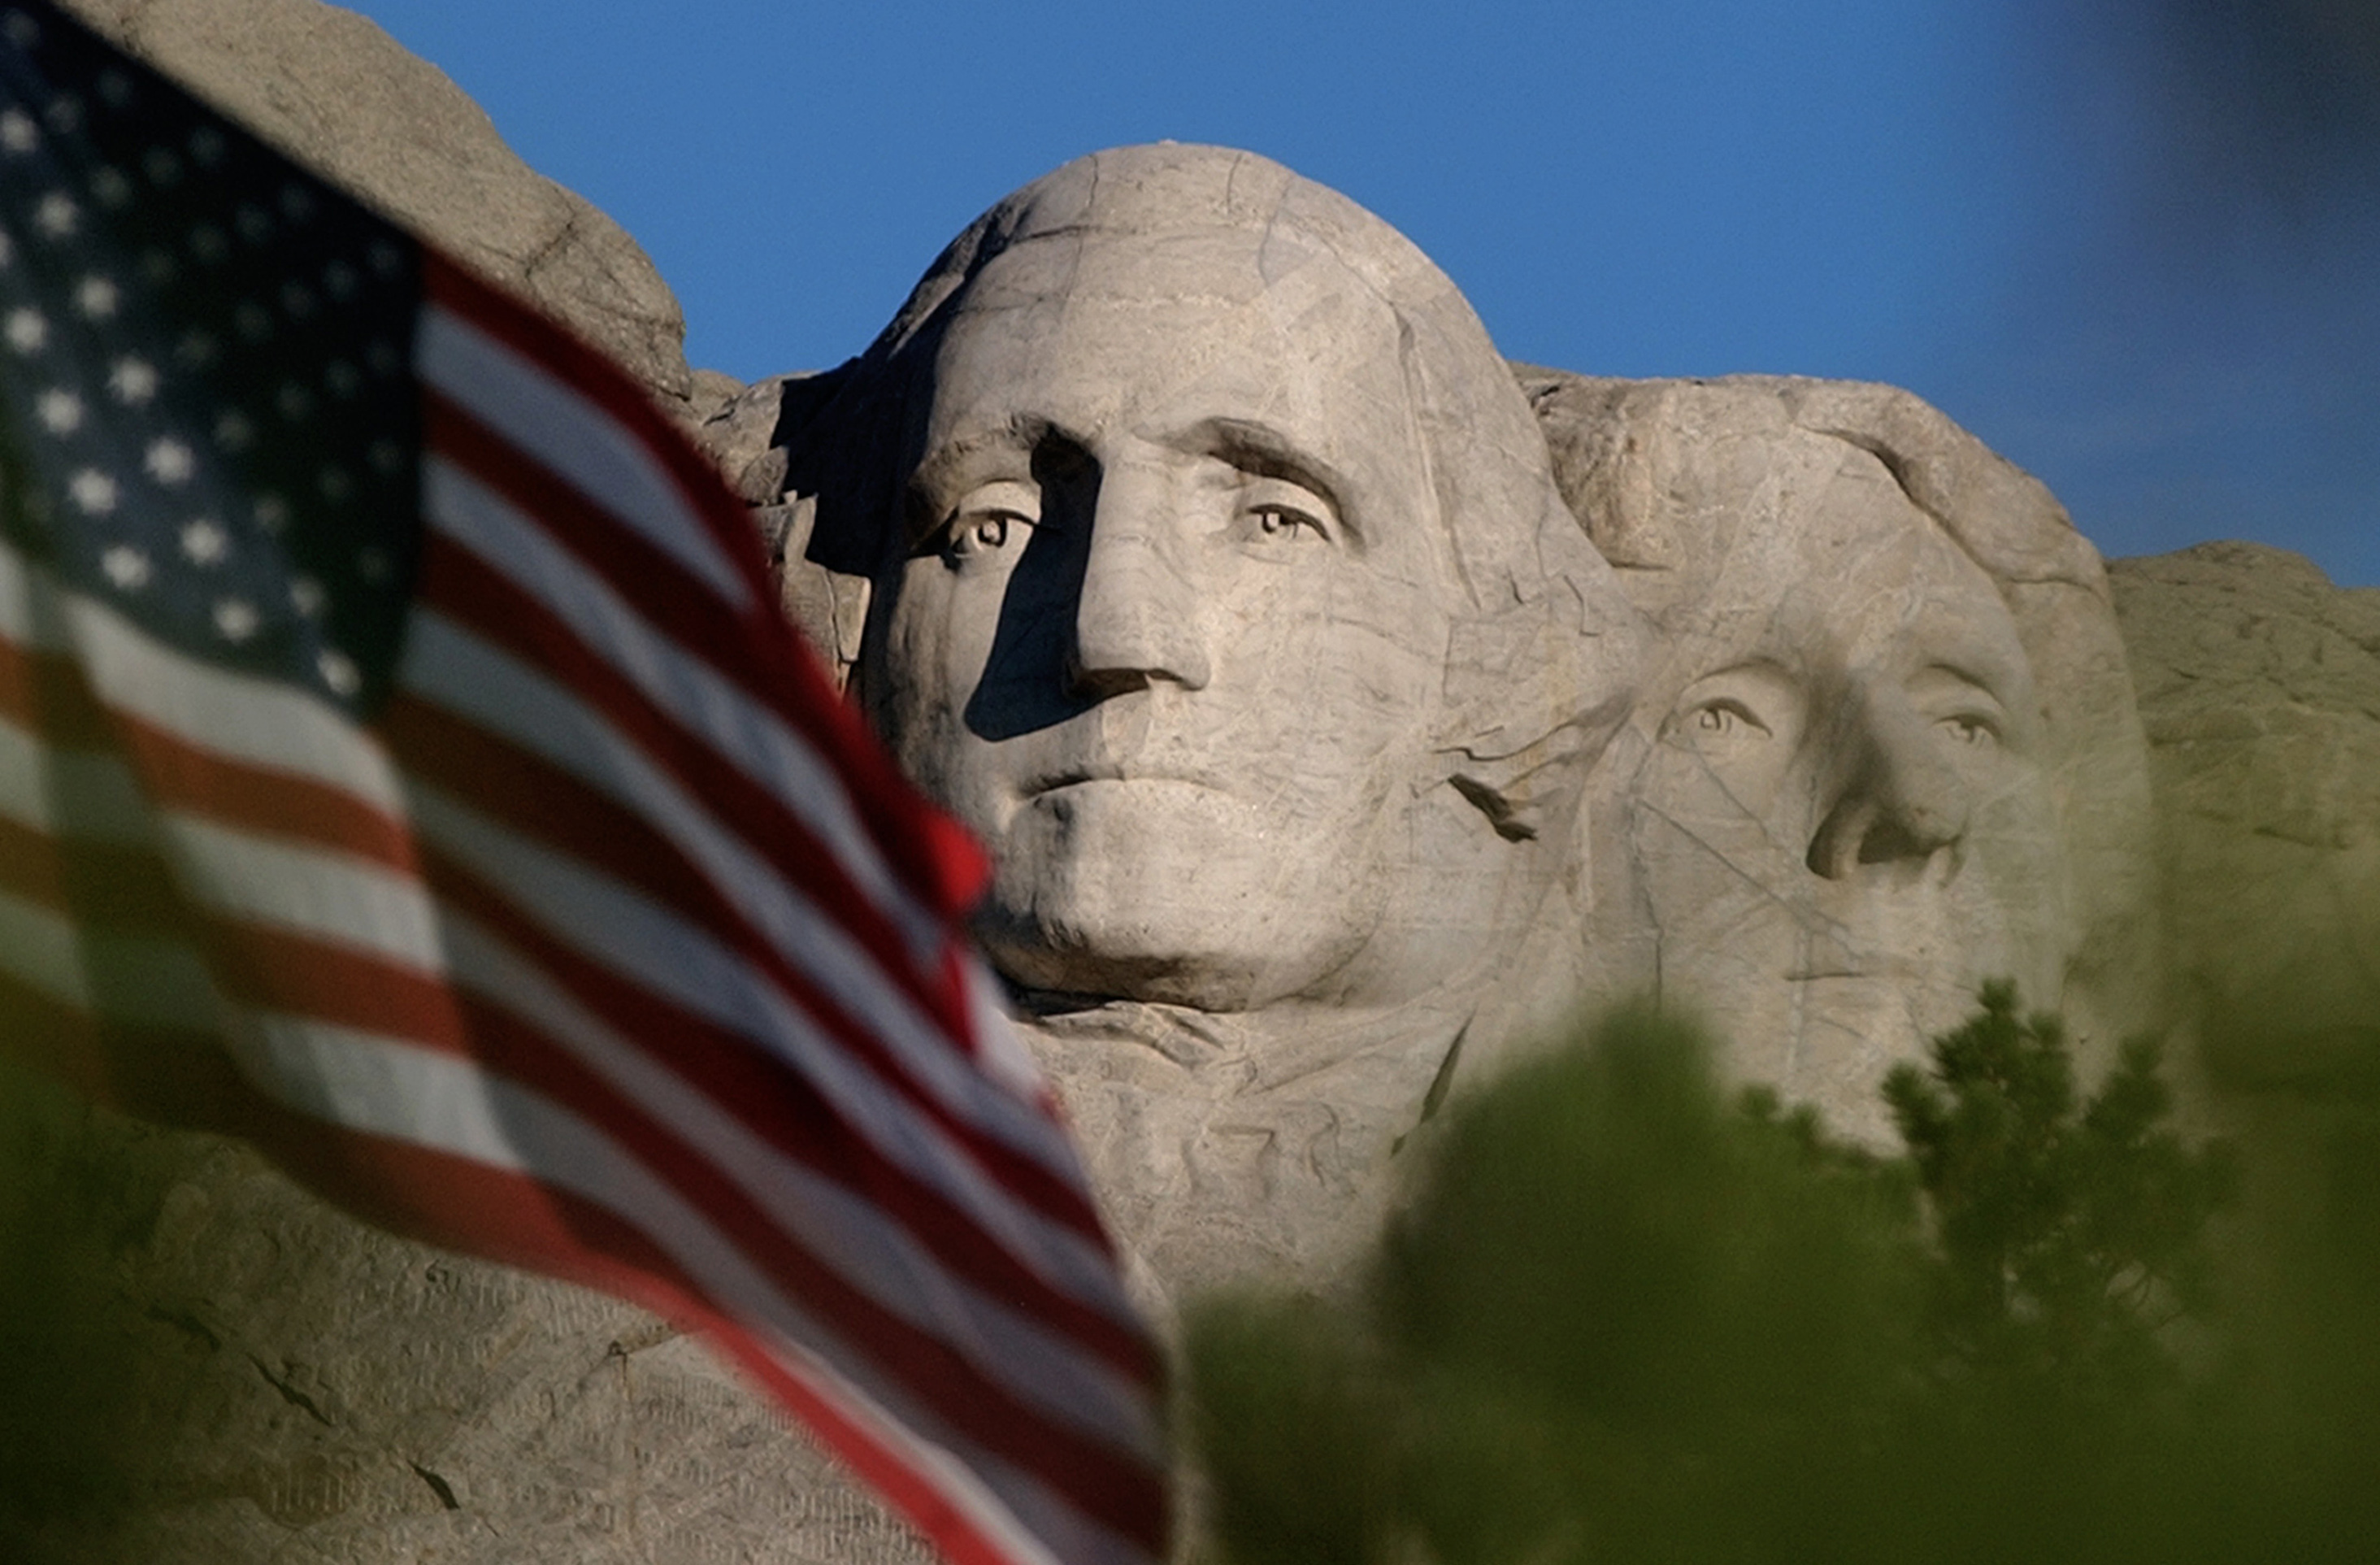 In this Sept. 11, 2002, file photo, the sun rises on Mt. Rushmore National Memorial near Keystone, S.D. as the flag is flown at half staff in honor of the first anniversary of the Sept. 11 terrorist attacks against the United States.